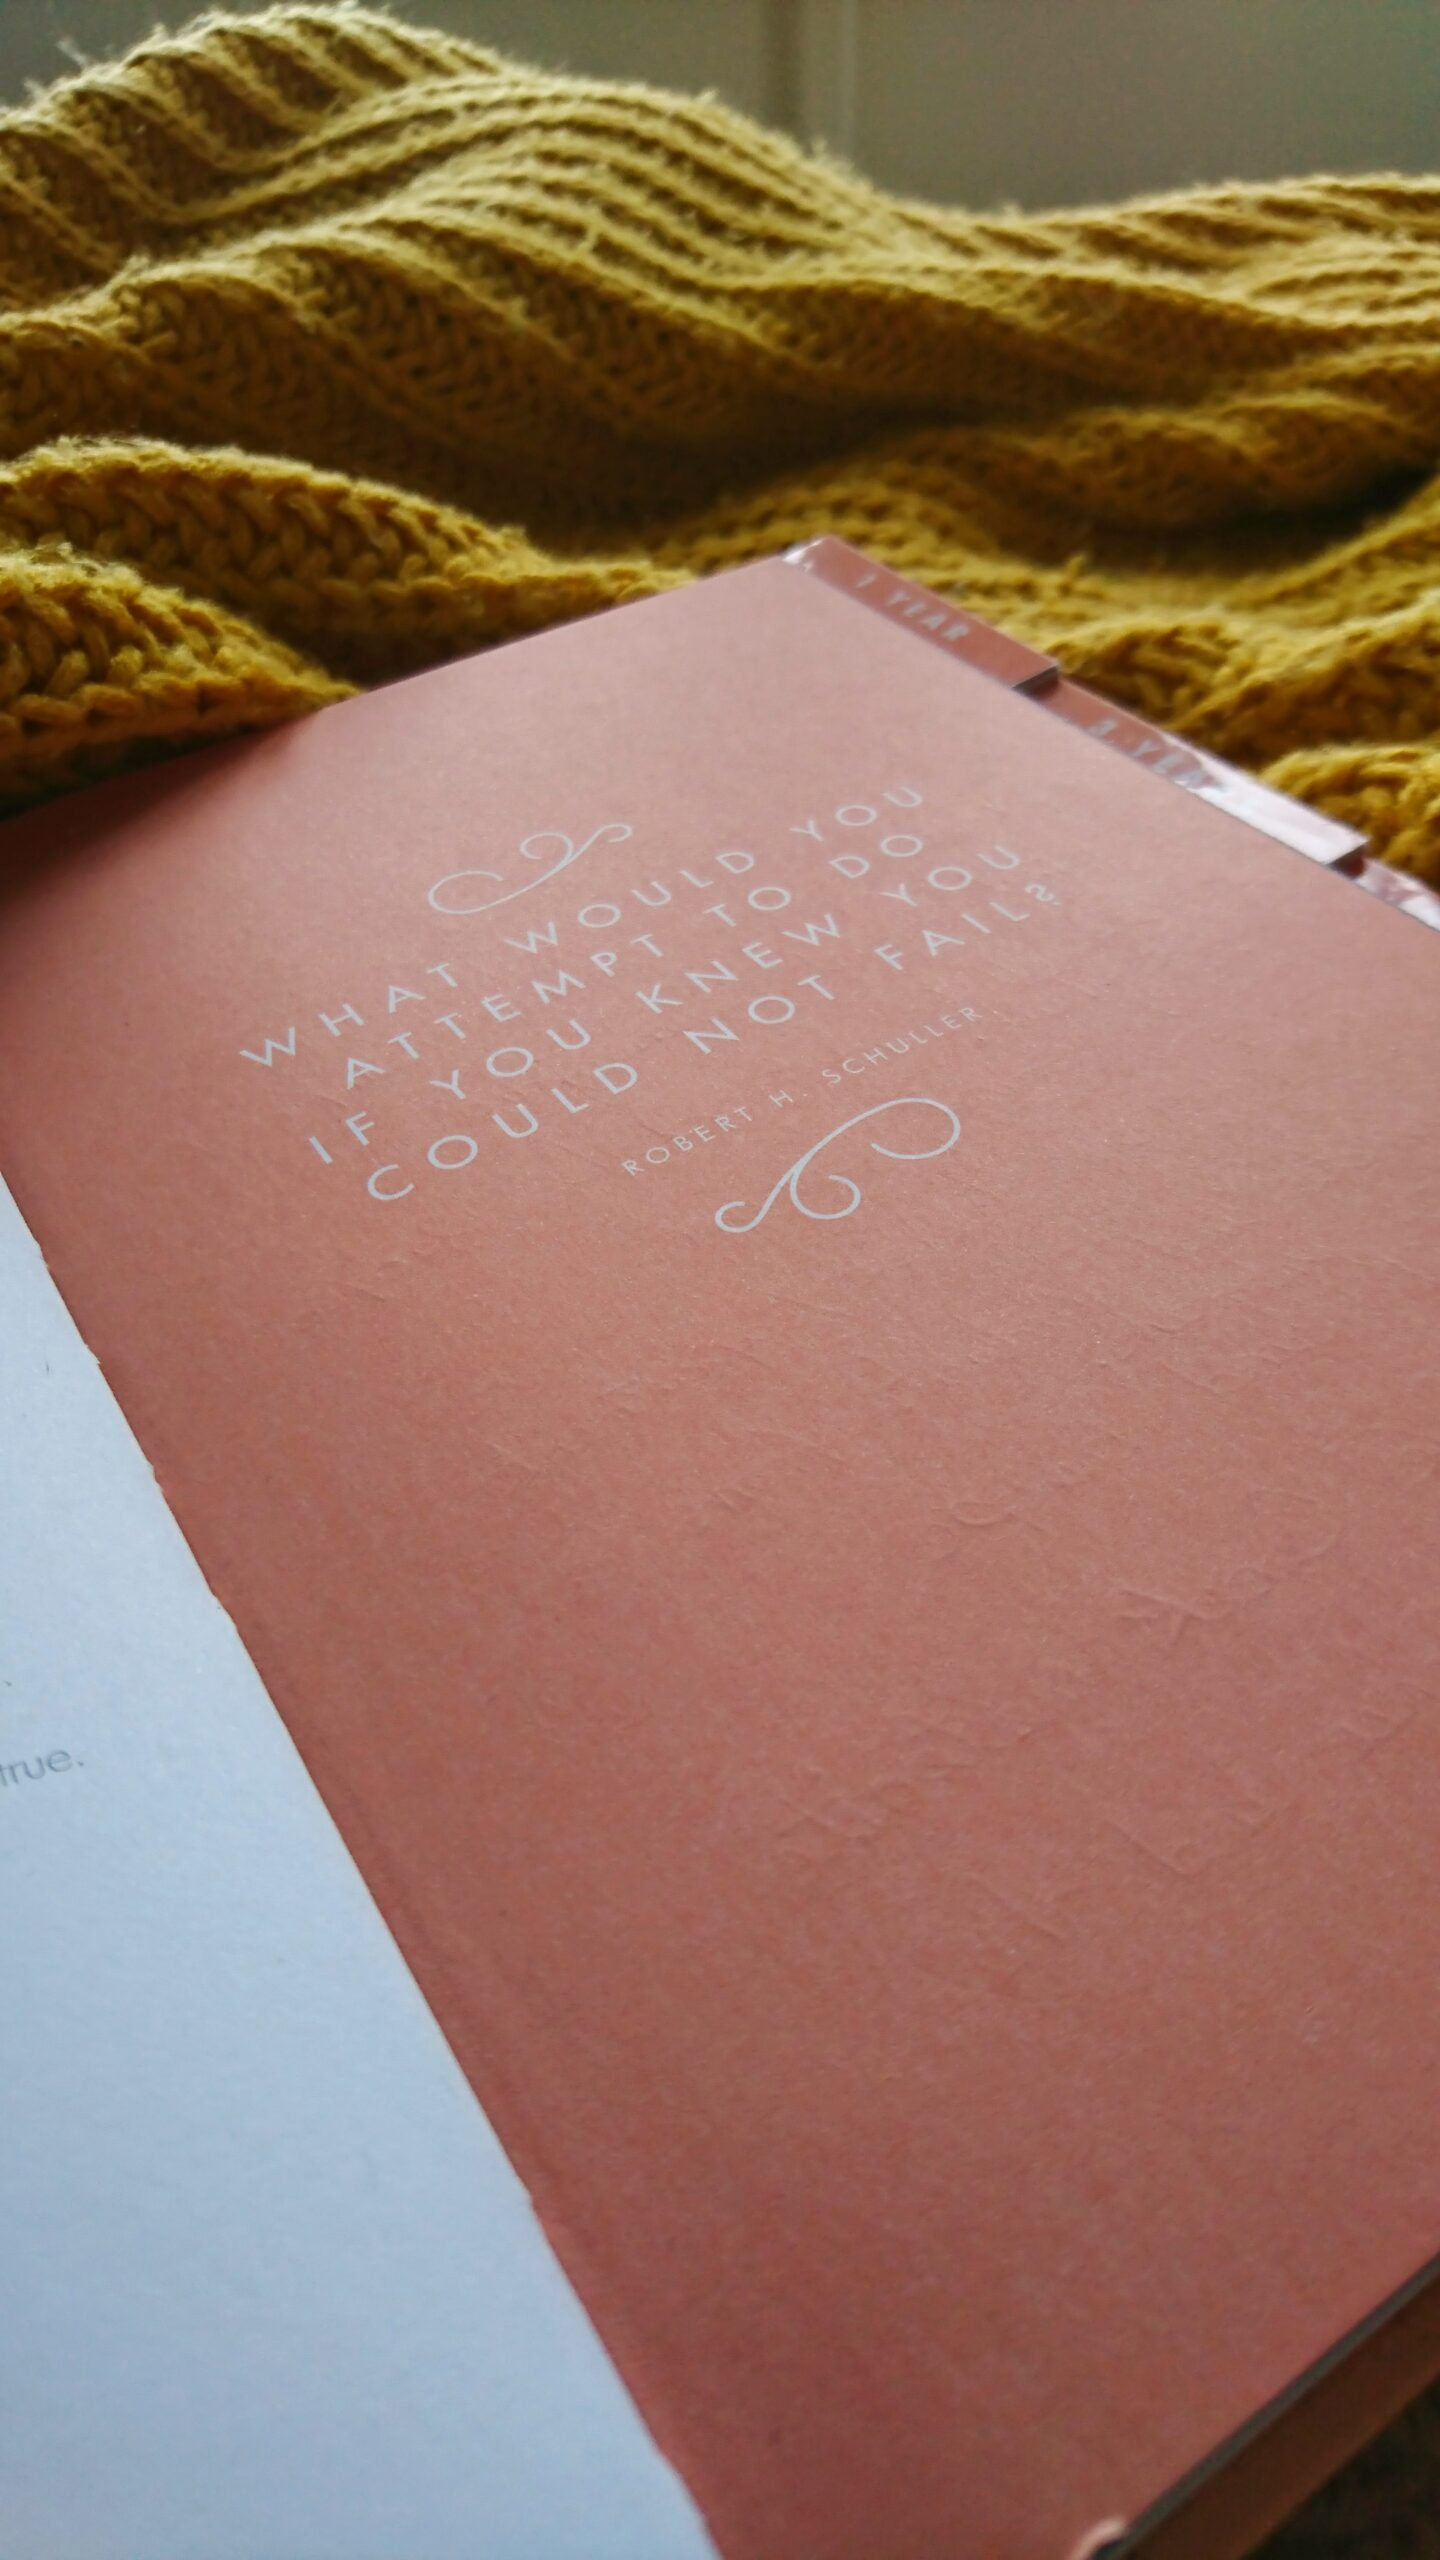 Quote 'What would you attempt to do if you knew you could not fail' in notebook